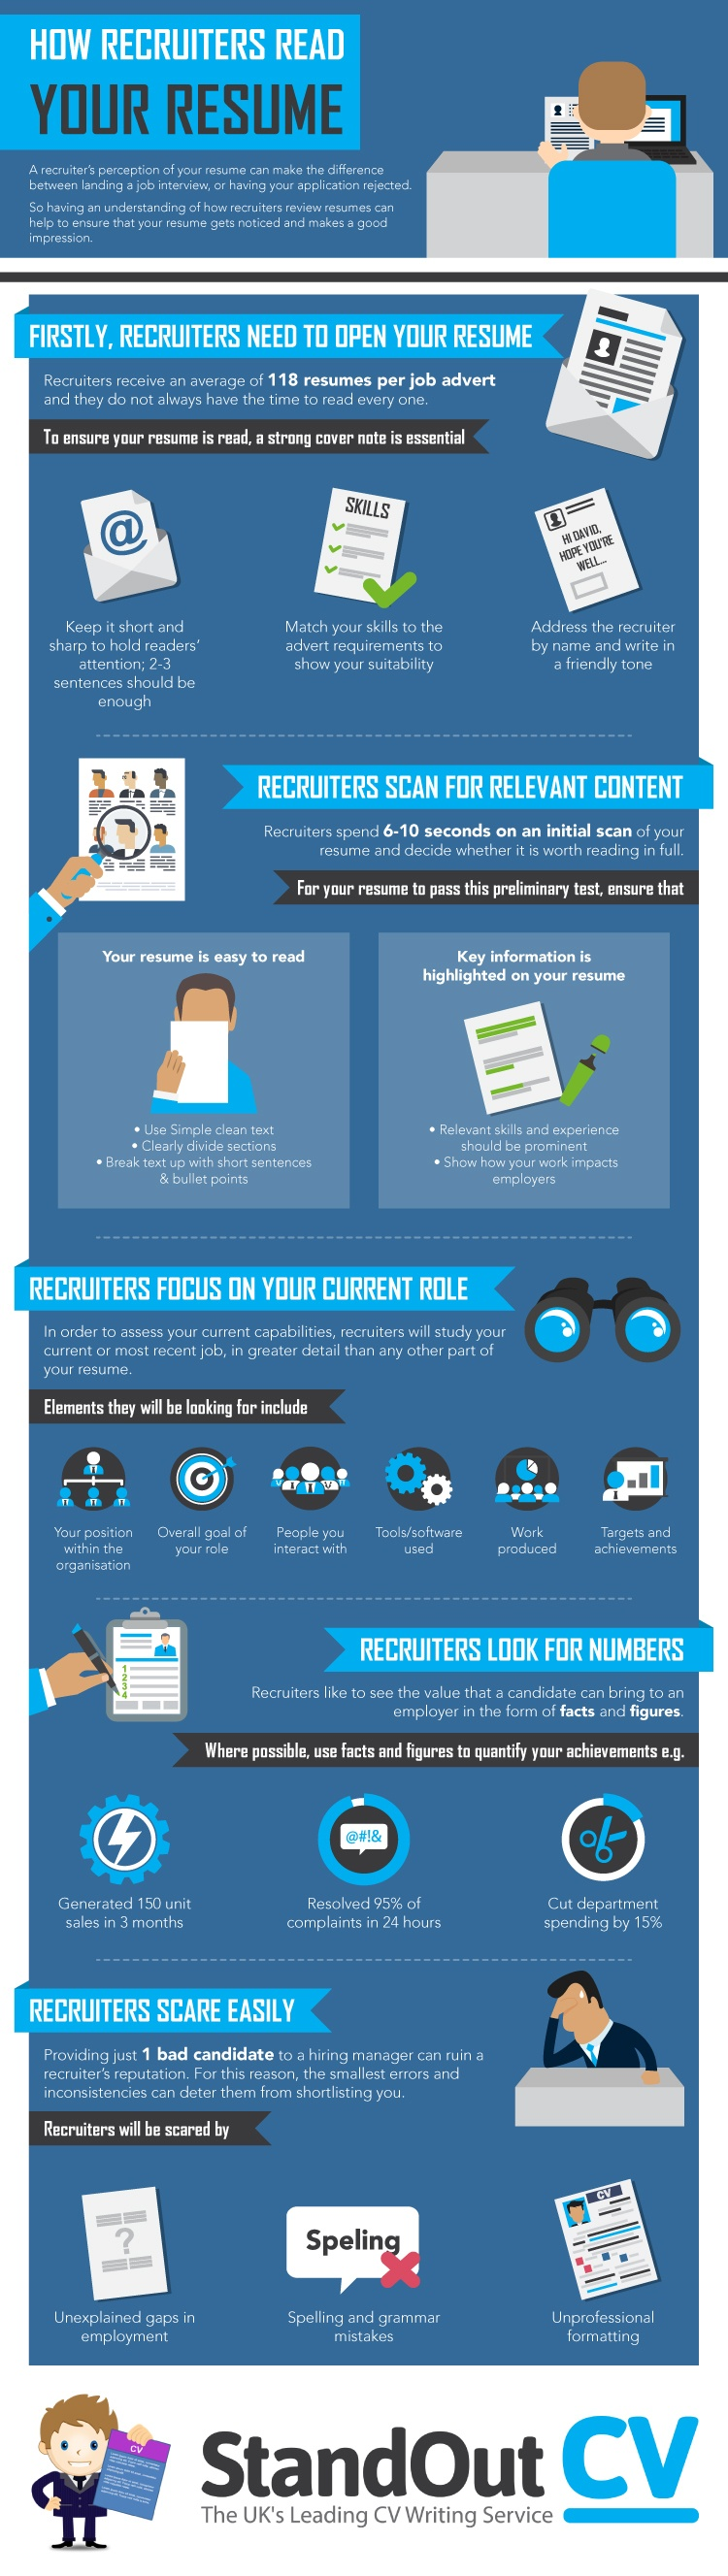 how-recruiters-read-your-resume-infographic